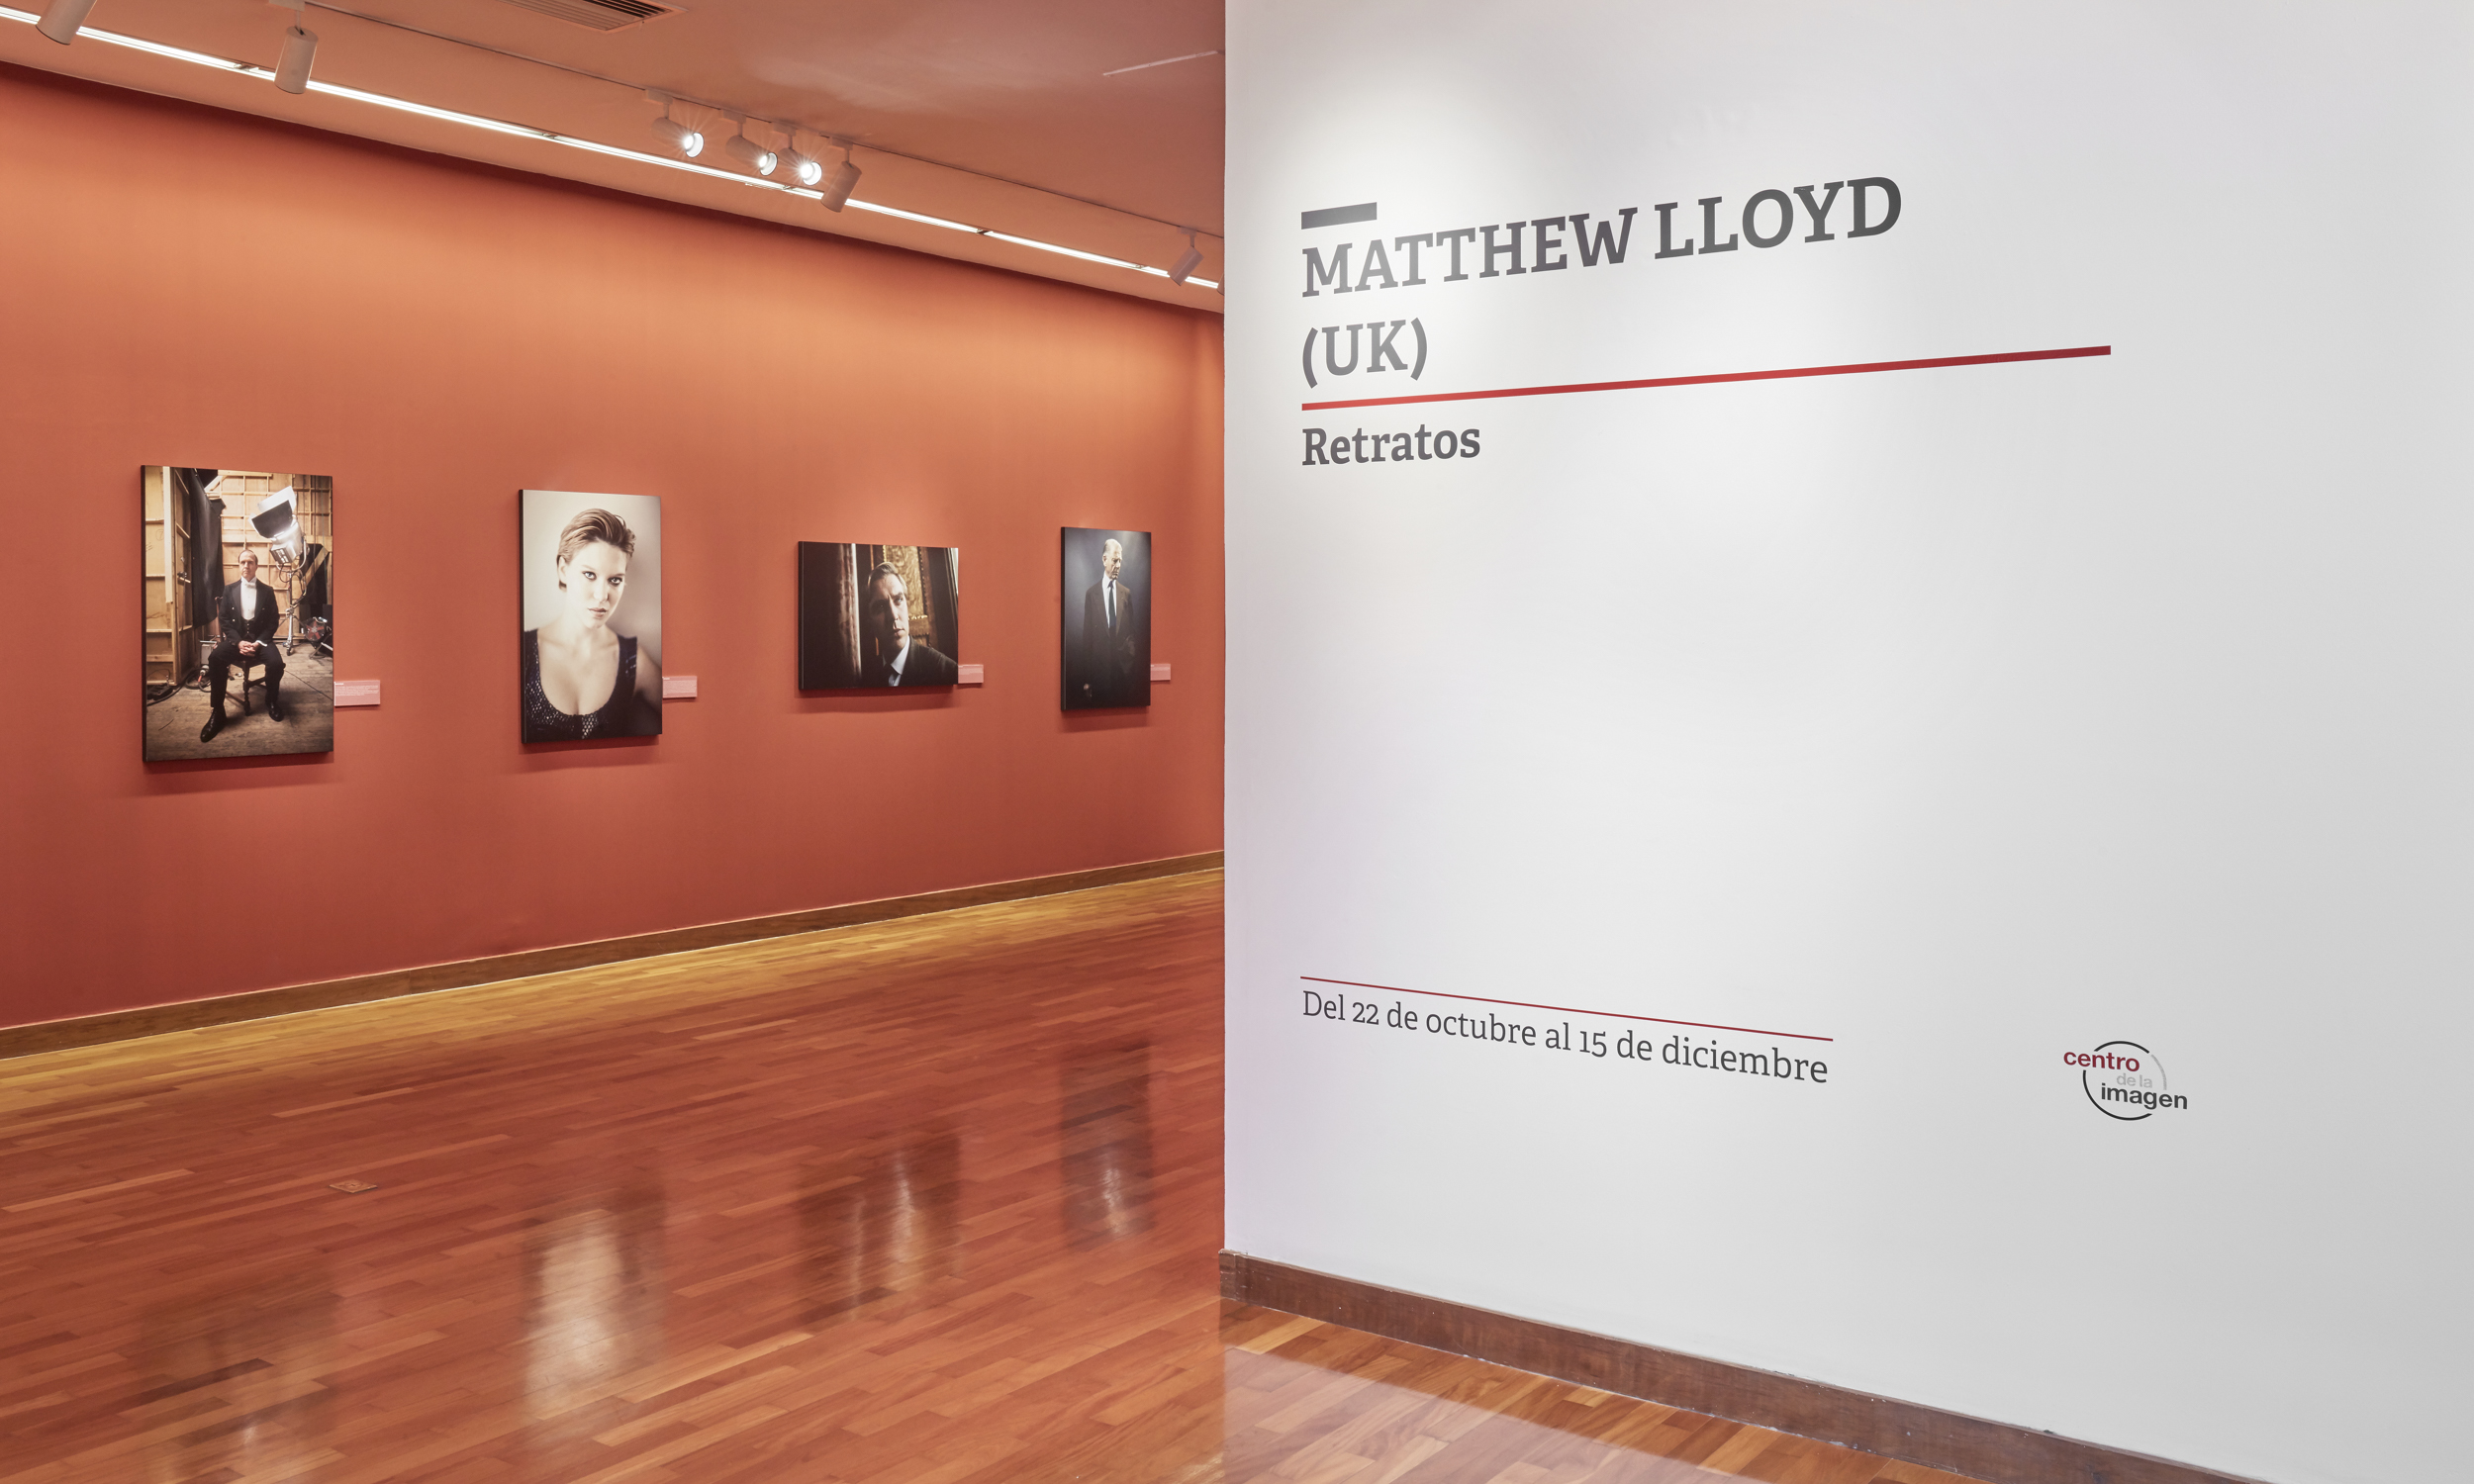 exhibiton in peru for yorkshire based fine art and celebrity photographer matthew lloyd 0018.JPG